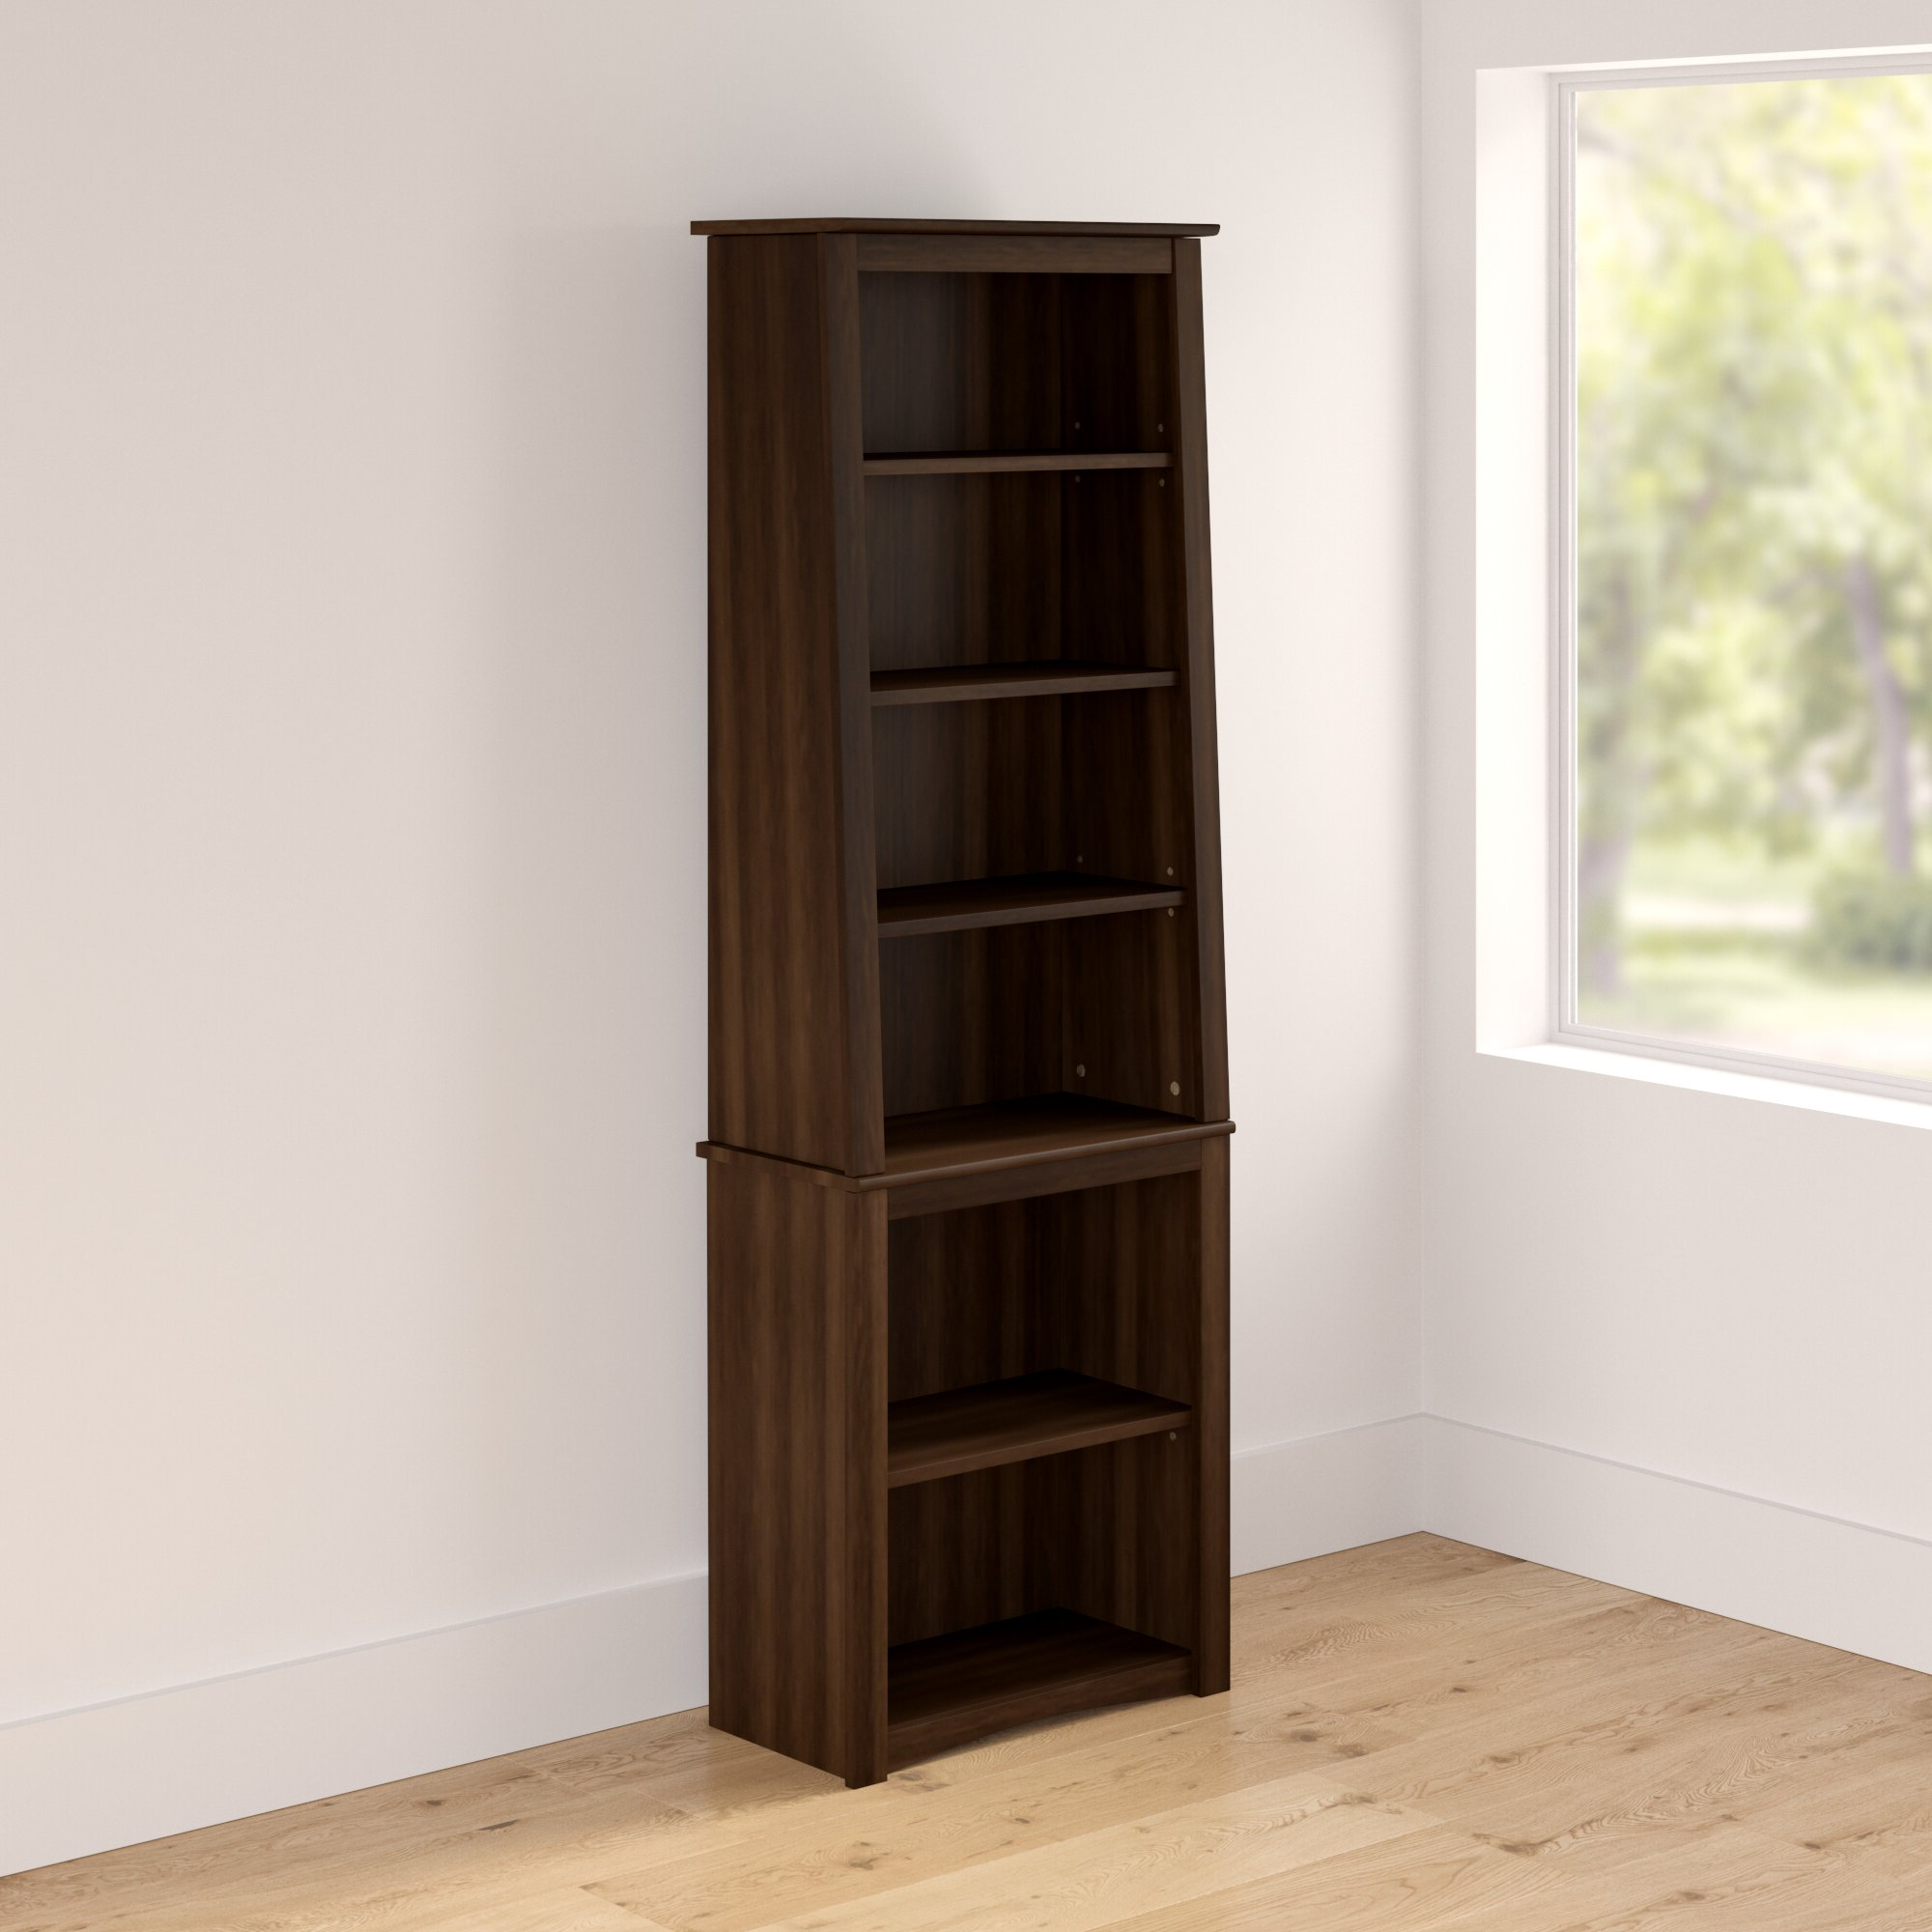 Dowlen Standard Bookcase Throughout Well Known Walworth Standard Bookcases (View 2 of 20)